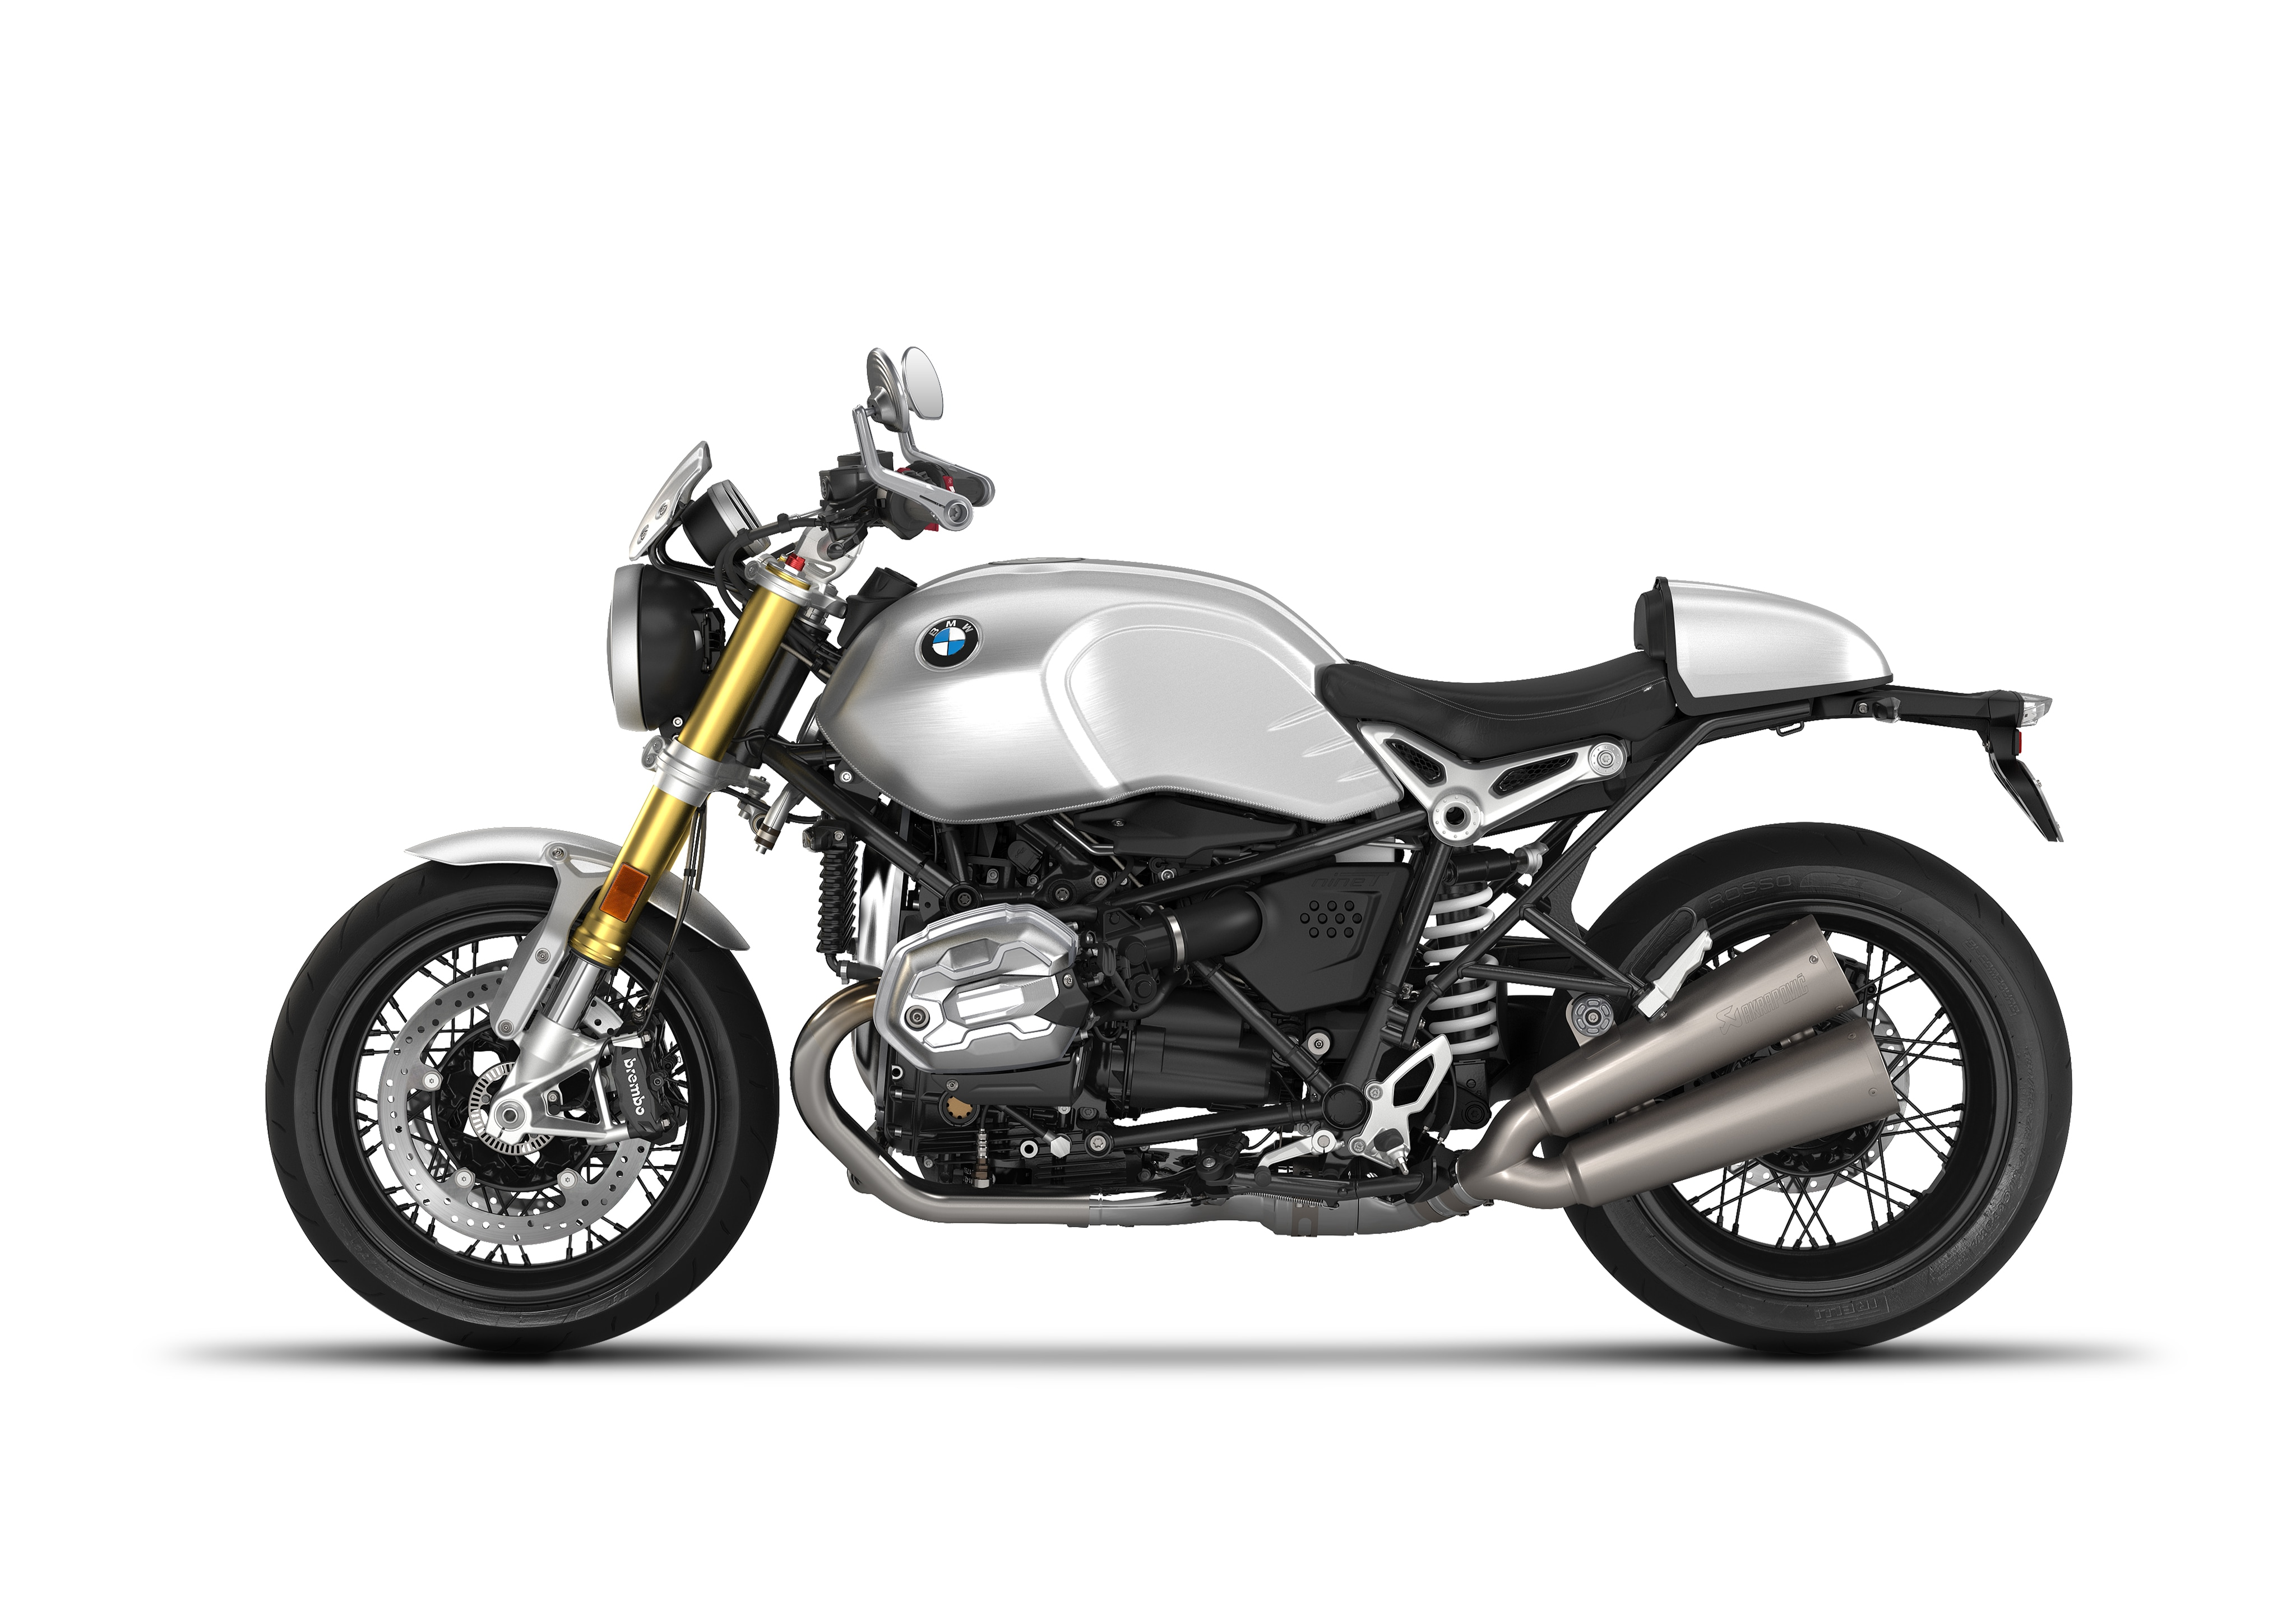 Both the bikes have been introduced as completely built-up units (CBU) models in the country and are now available for bookings across all the BMW Motorrad India dealerships. (In pic: BMW R nineT.)